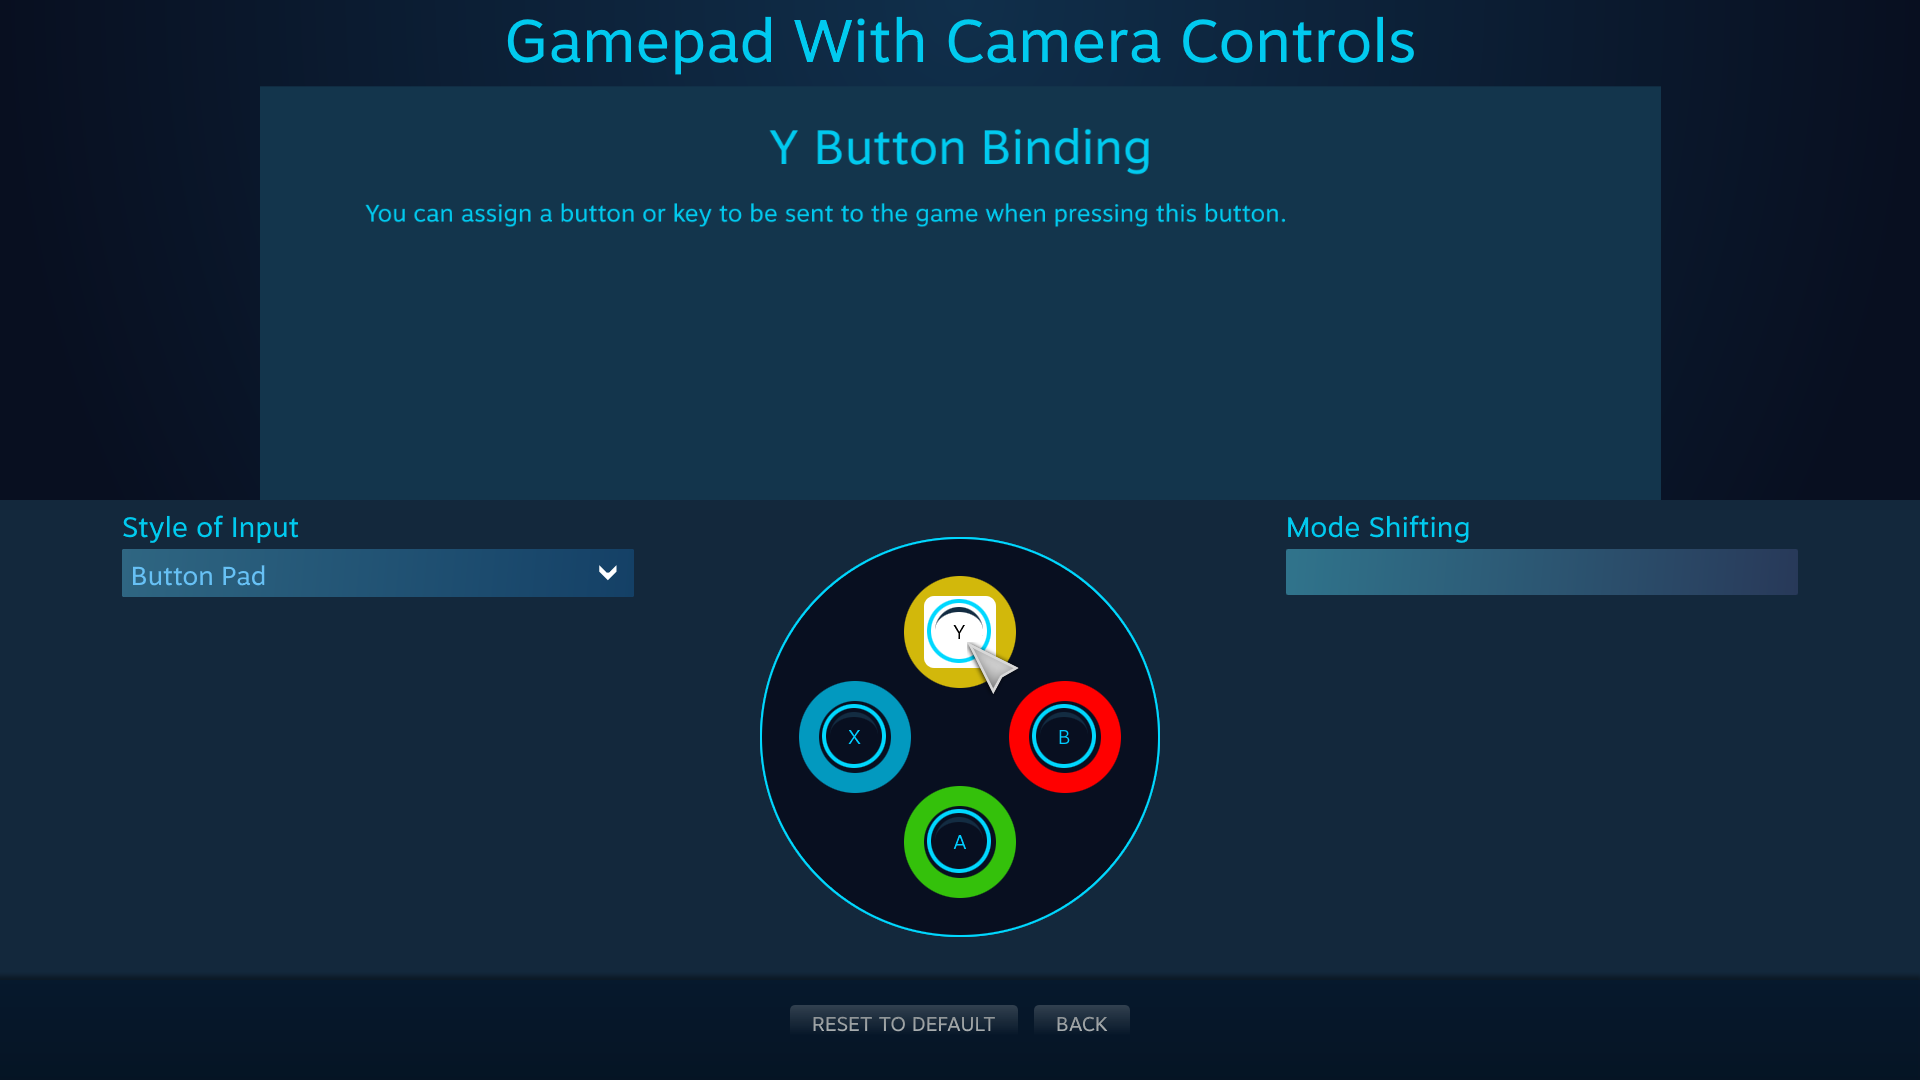 gamepad_w_camera_bpad_y.png